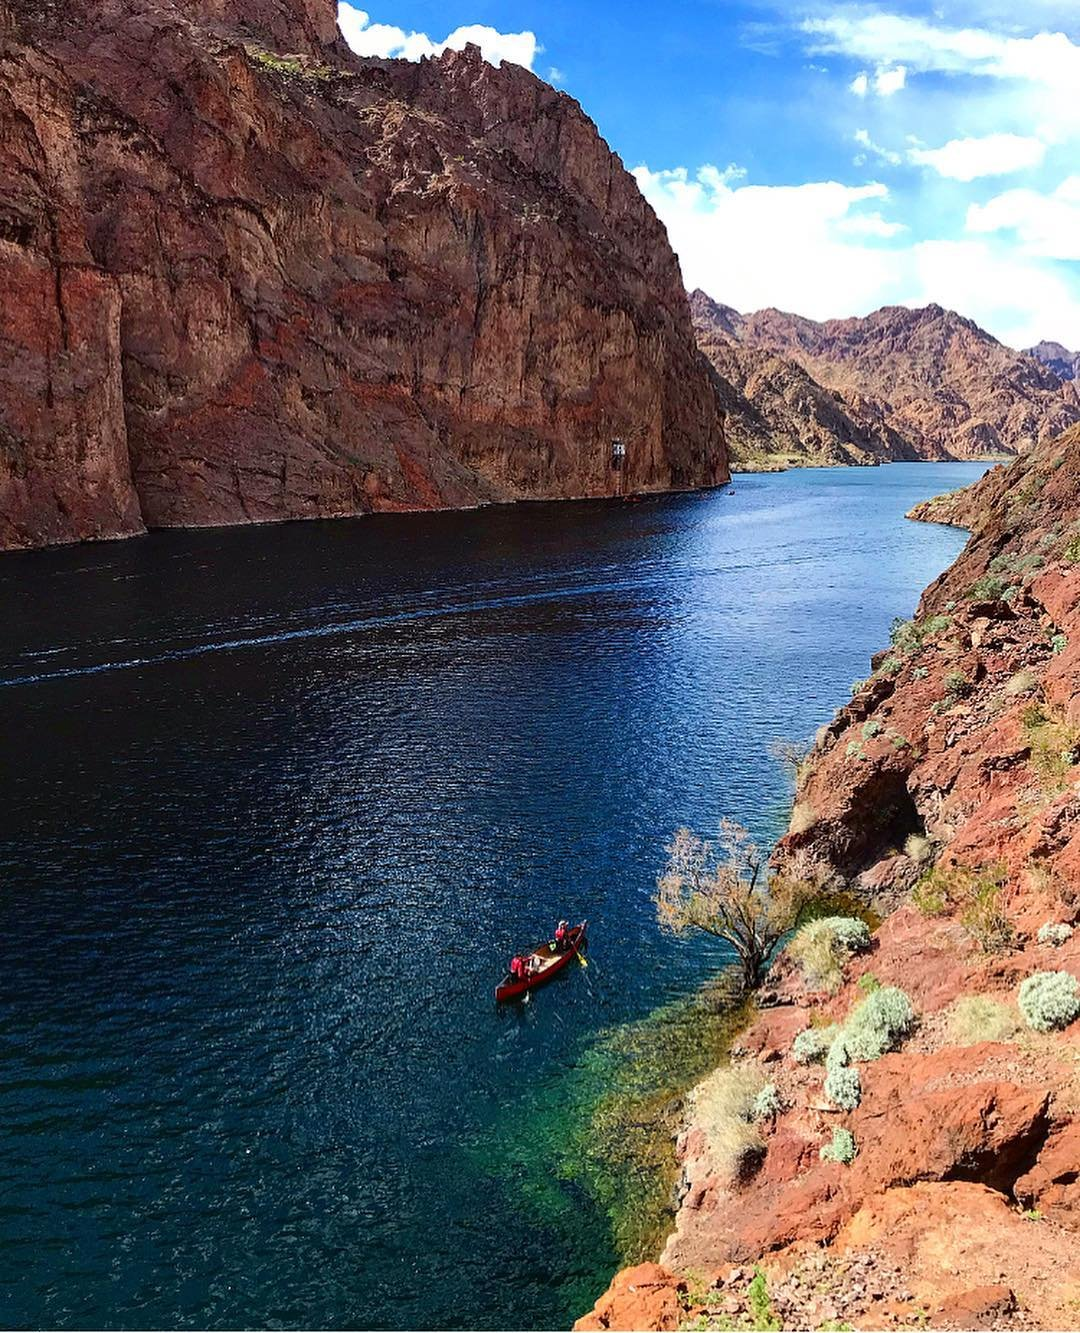 Planning trips in late Feb/early March are tricky. We had to adjust plans a few times due to weather and permits. Landed on a 12 mile paddle through the Black Canyon, down the Colorado River...making stops along the way to explore and soak in 4 different hot springs, then camped on the beach with an impressive fire, post an under the stars soak adventure. Not sure how I'm going to go back to a life that doesn't include a daily nature soak 🤷🏻‍♀️ becky.schreiber wins the trip saver award for coming up with plan F that was an A+ adventure and thankful for kkurc for doing all the hard work of steering the canoe 🛶